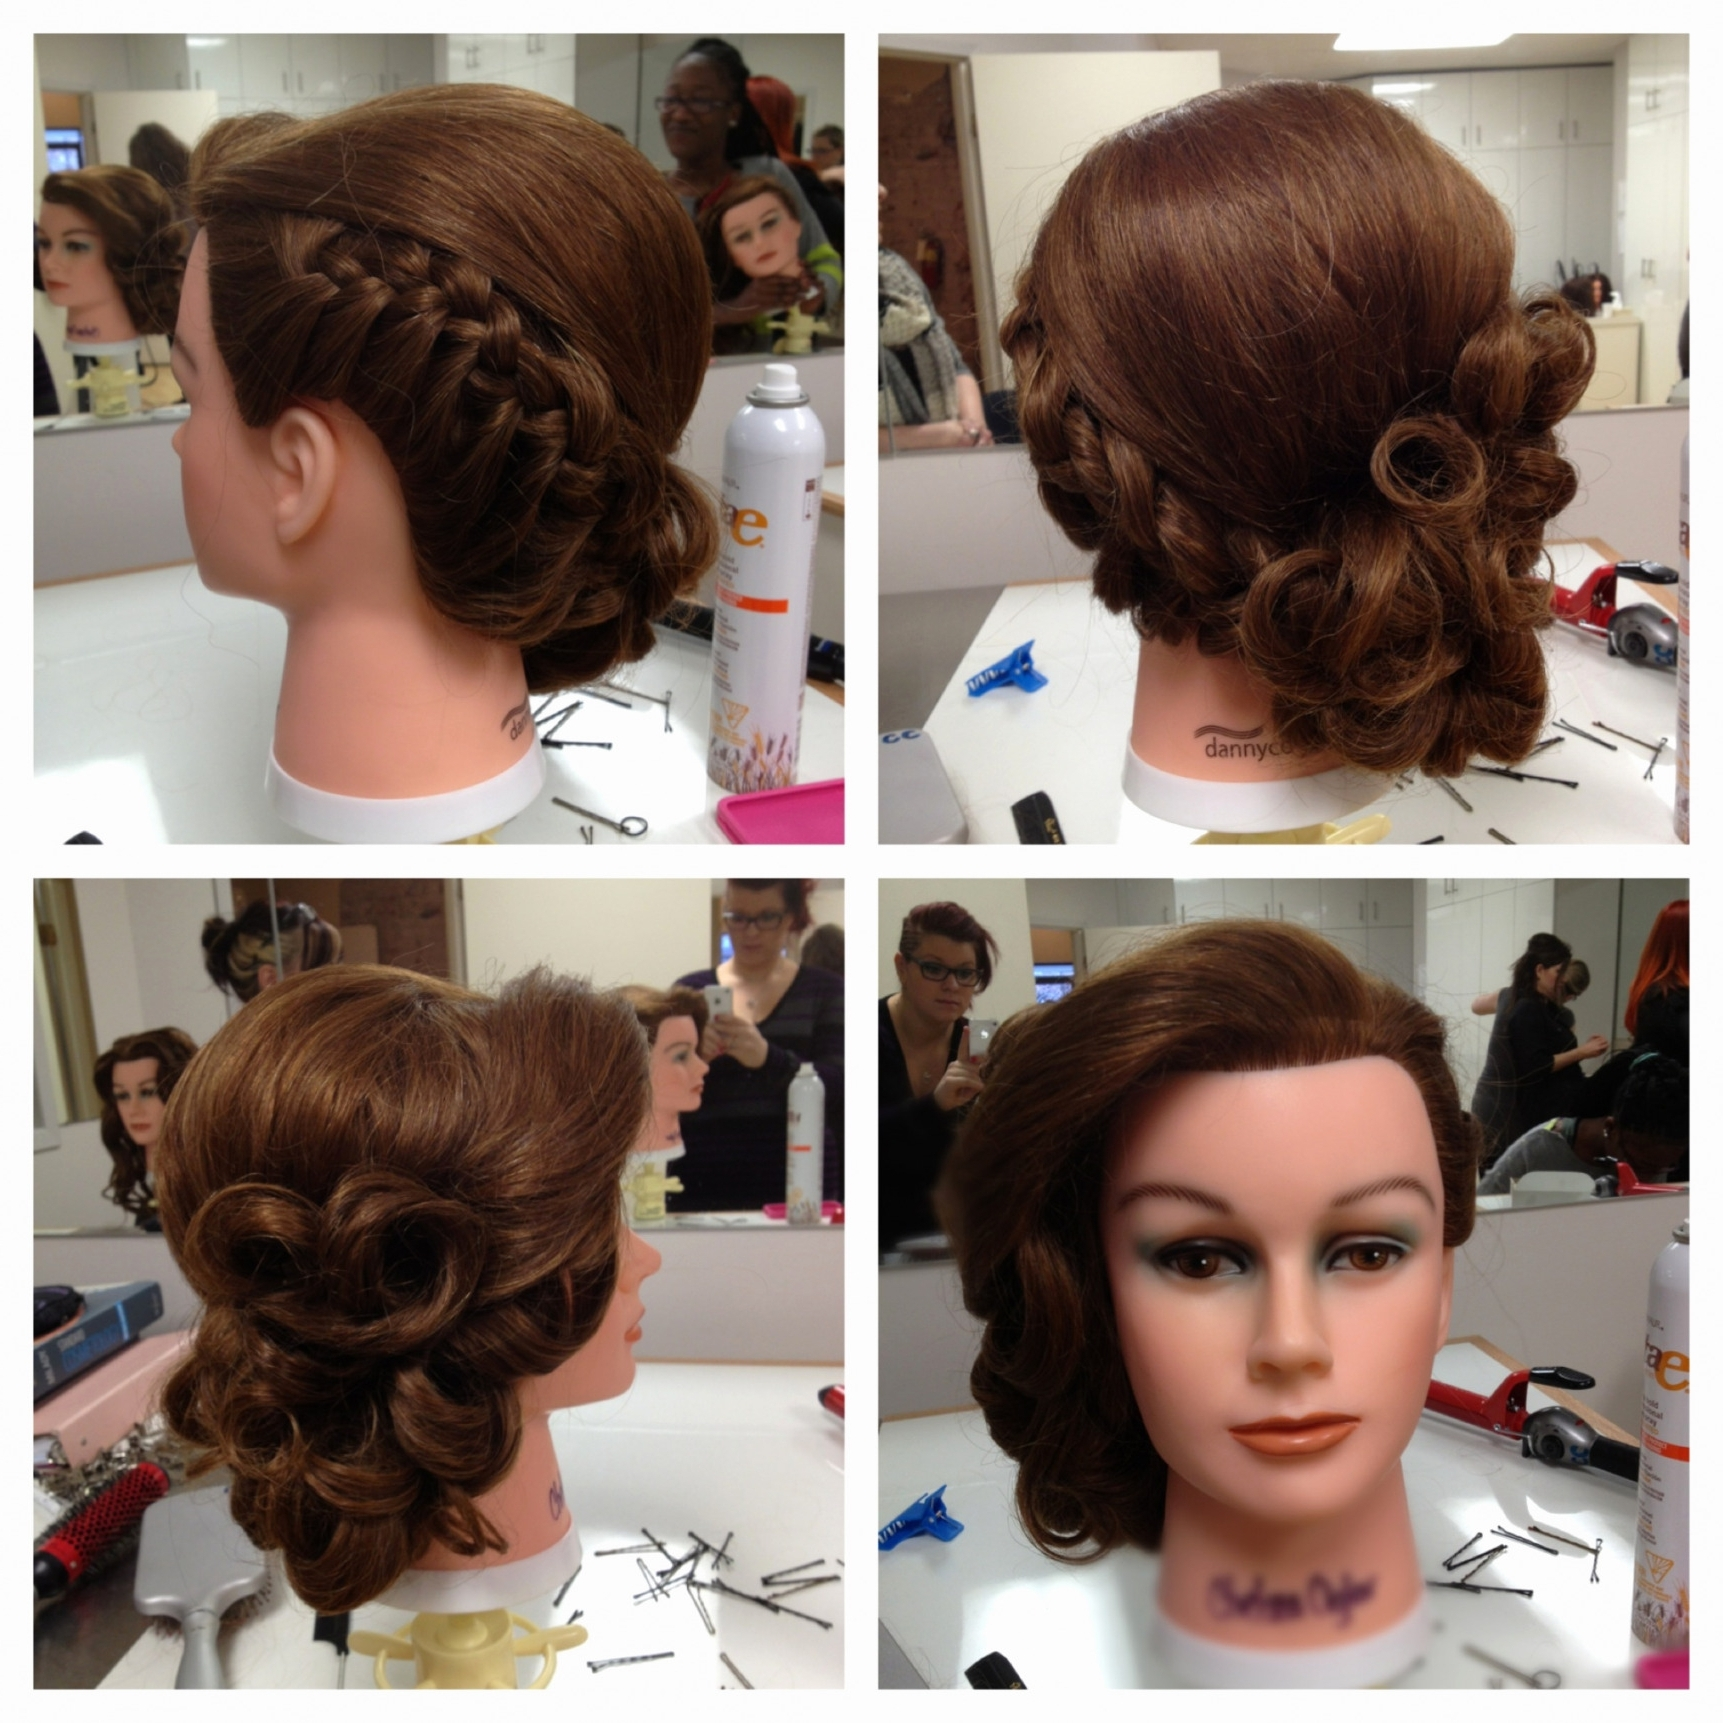 Pin Up Wedding Hairstyles Magnificent Curly Side Pin Up Hairstyles Intended For Most Up To Date Pin Up Wedding Hairstyles (View 12 of 15)